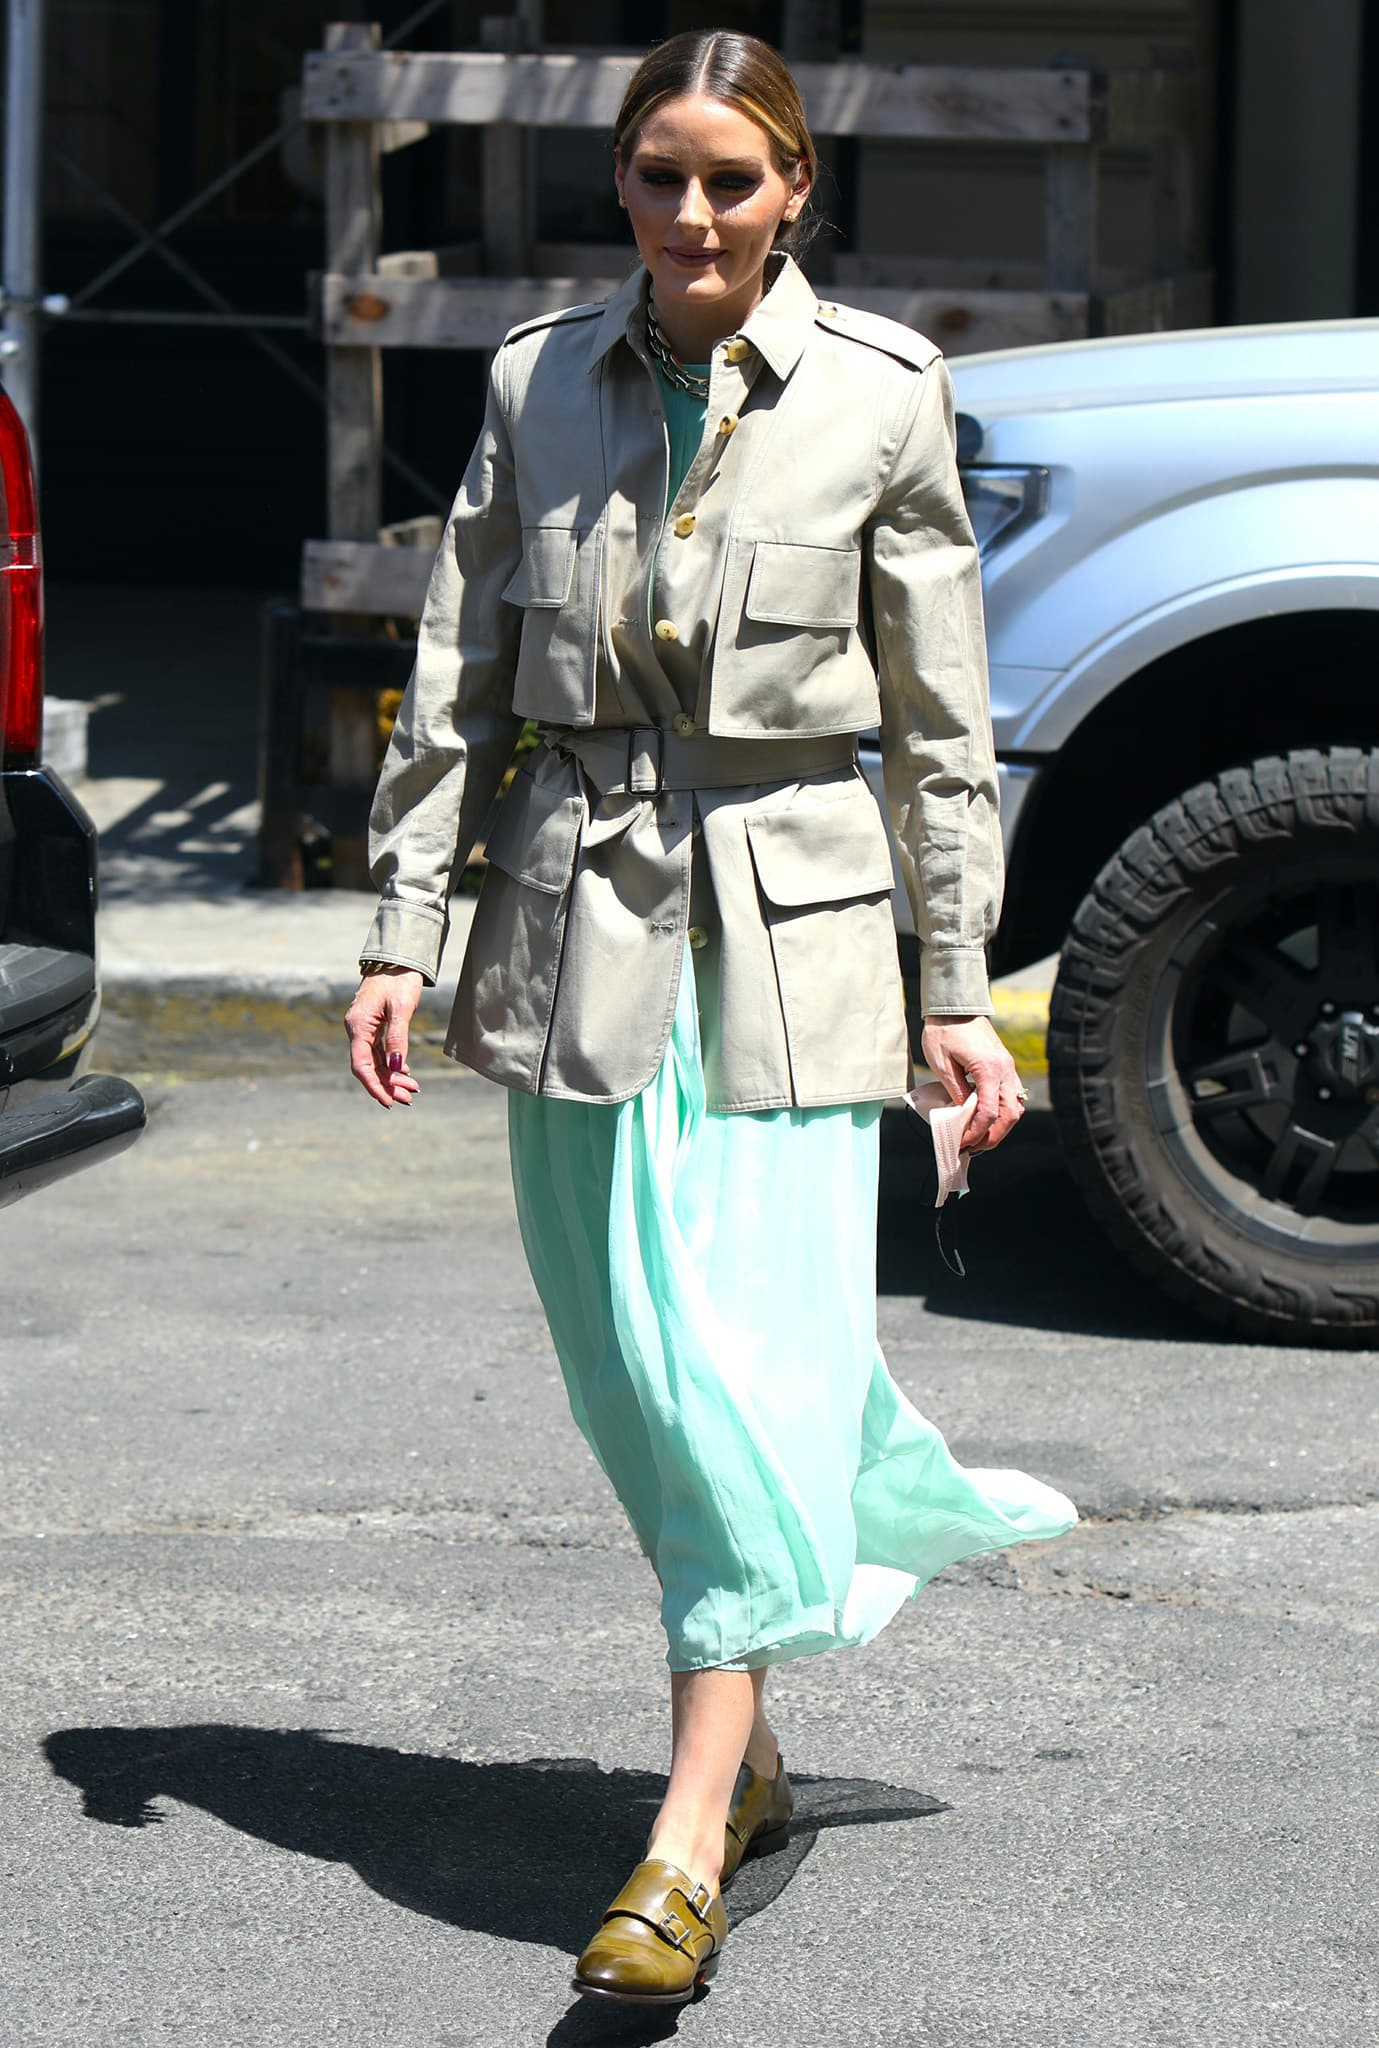 Olivia Palermo teams up with The Sicily Hill candles in a Tibi dress and Max Mara jacket on May 19, 2021